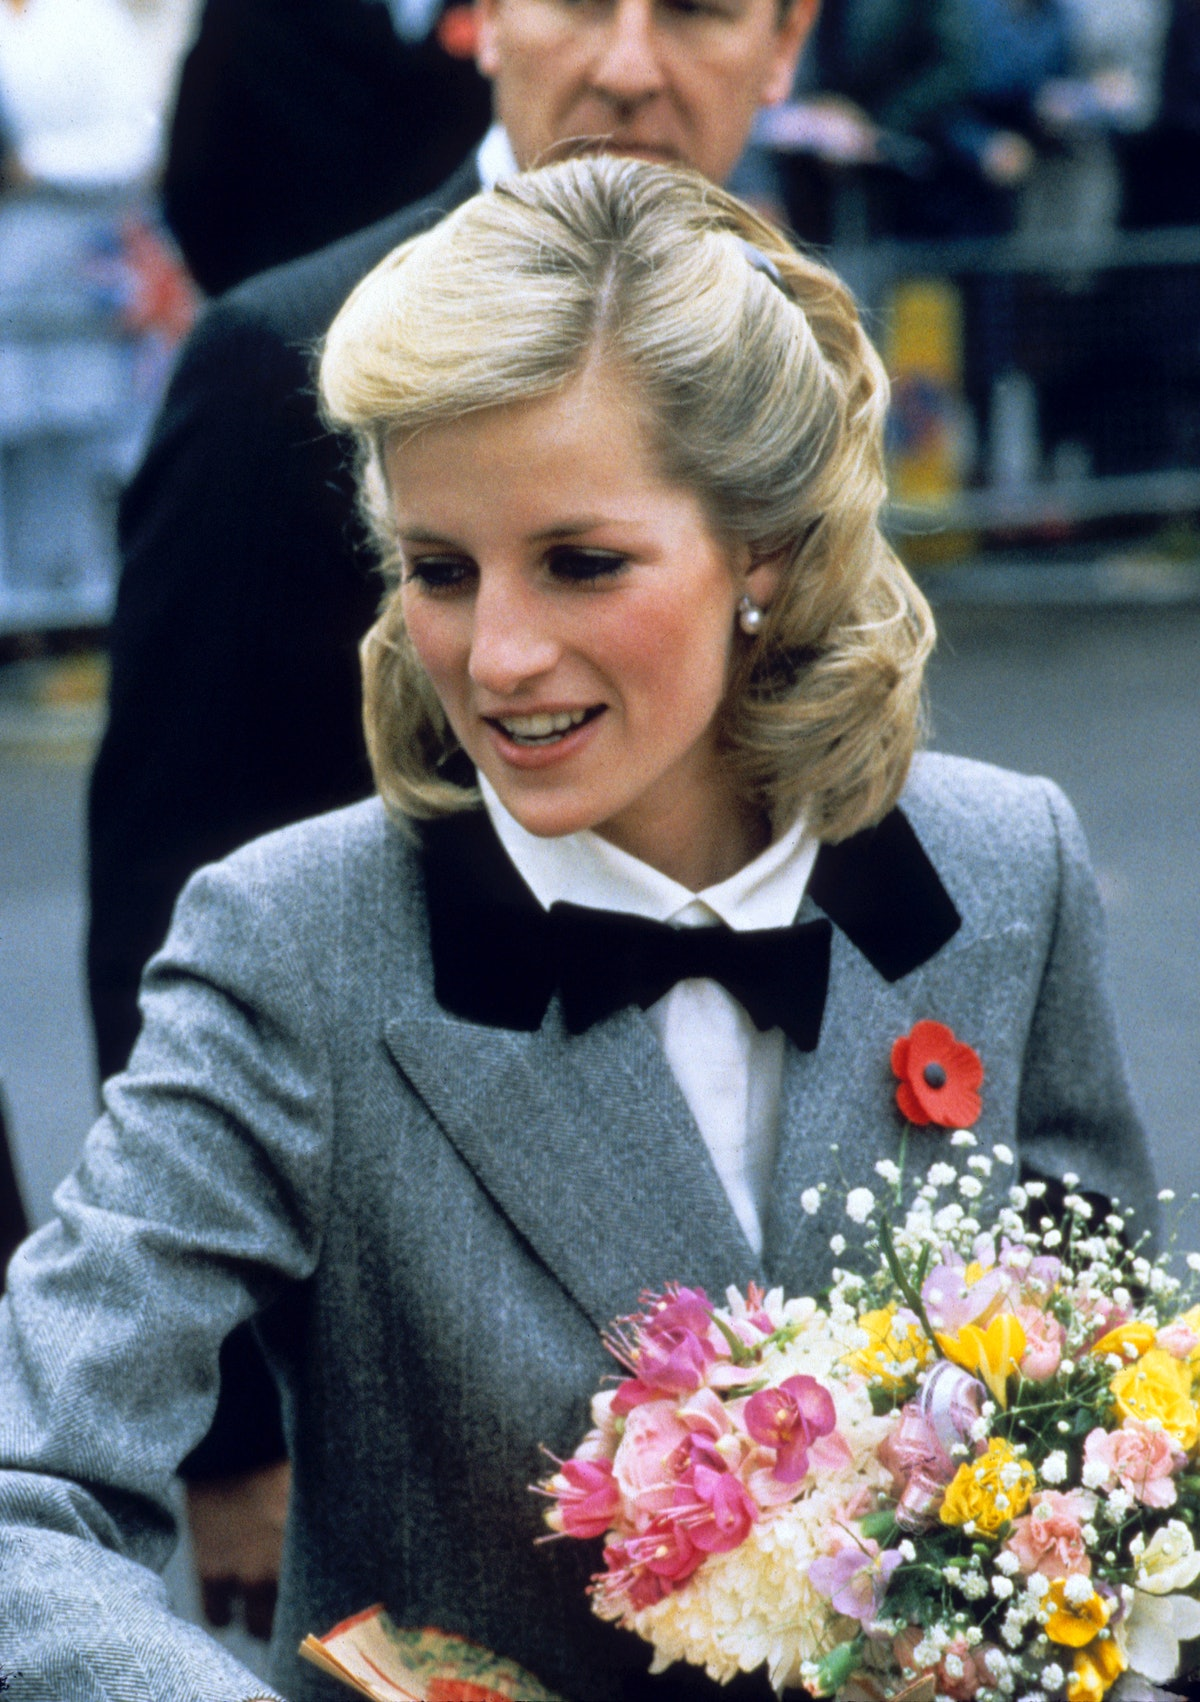 Princess Diana with long-ish, straight hair pulled back and a bowtie